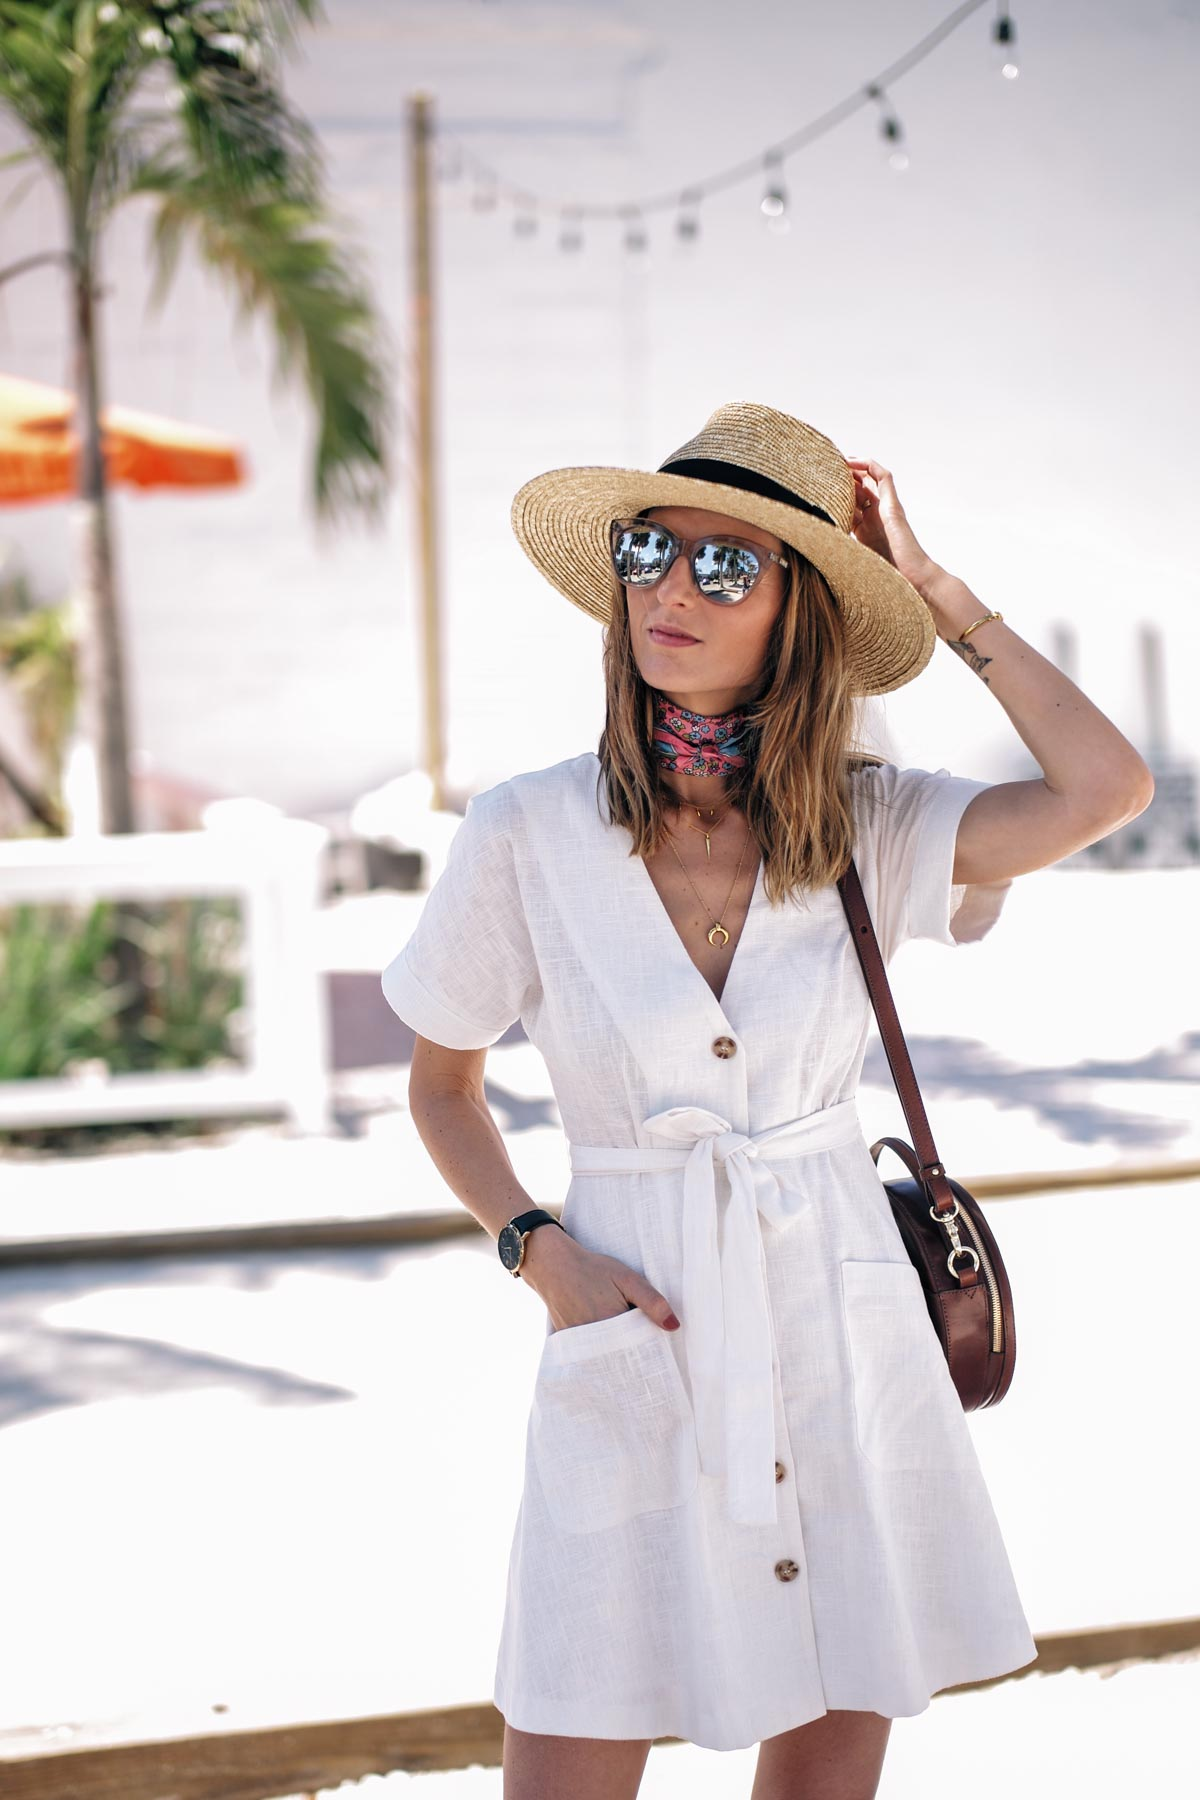 Jess Ann Kirby explores Saint Petersburg in a white linen dress with a straw hat and neck scarf